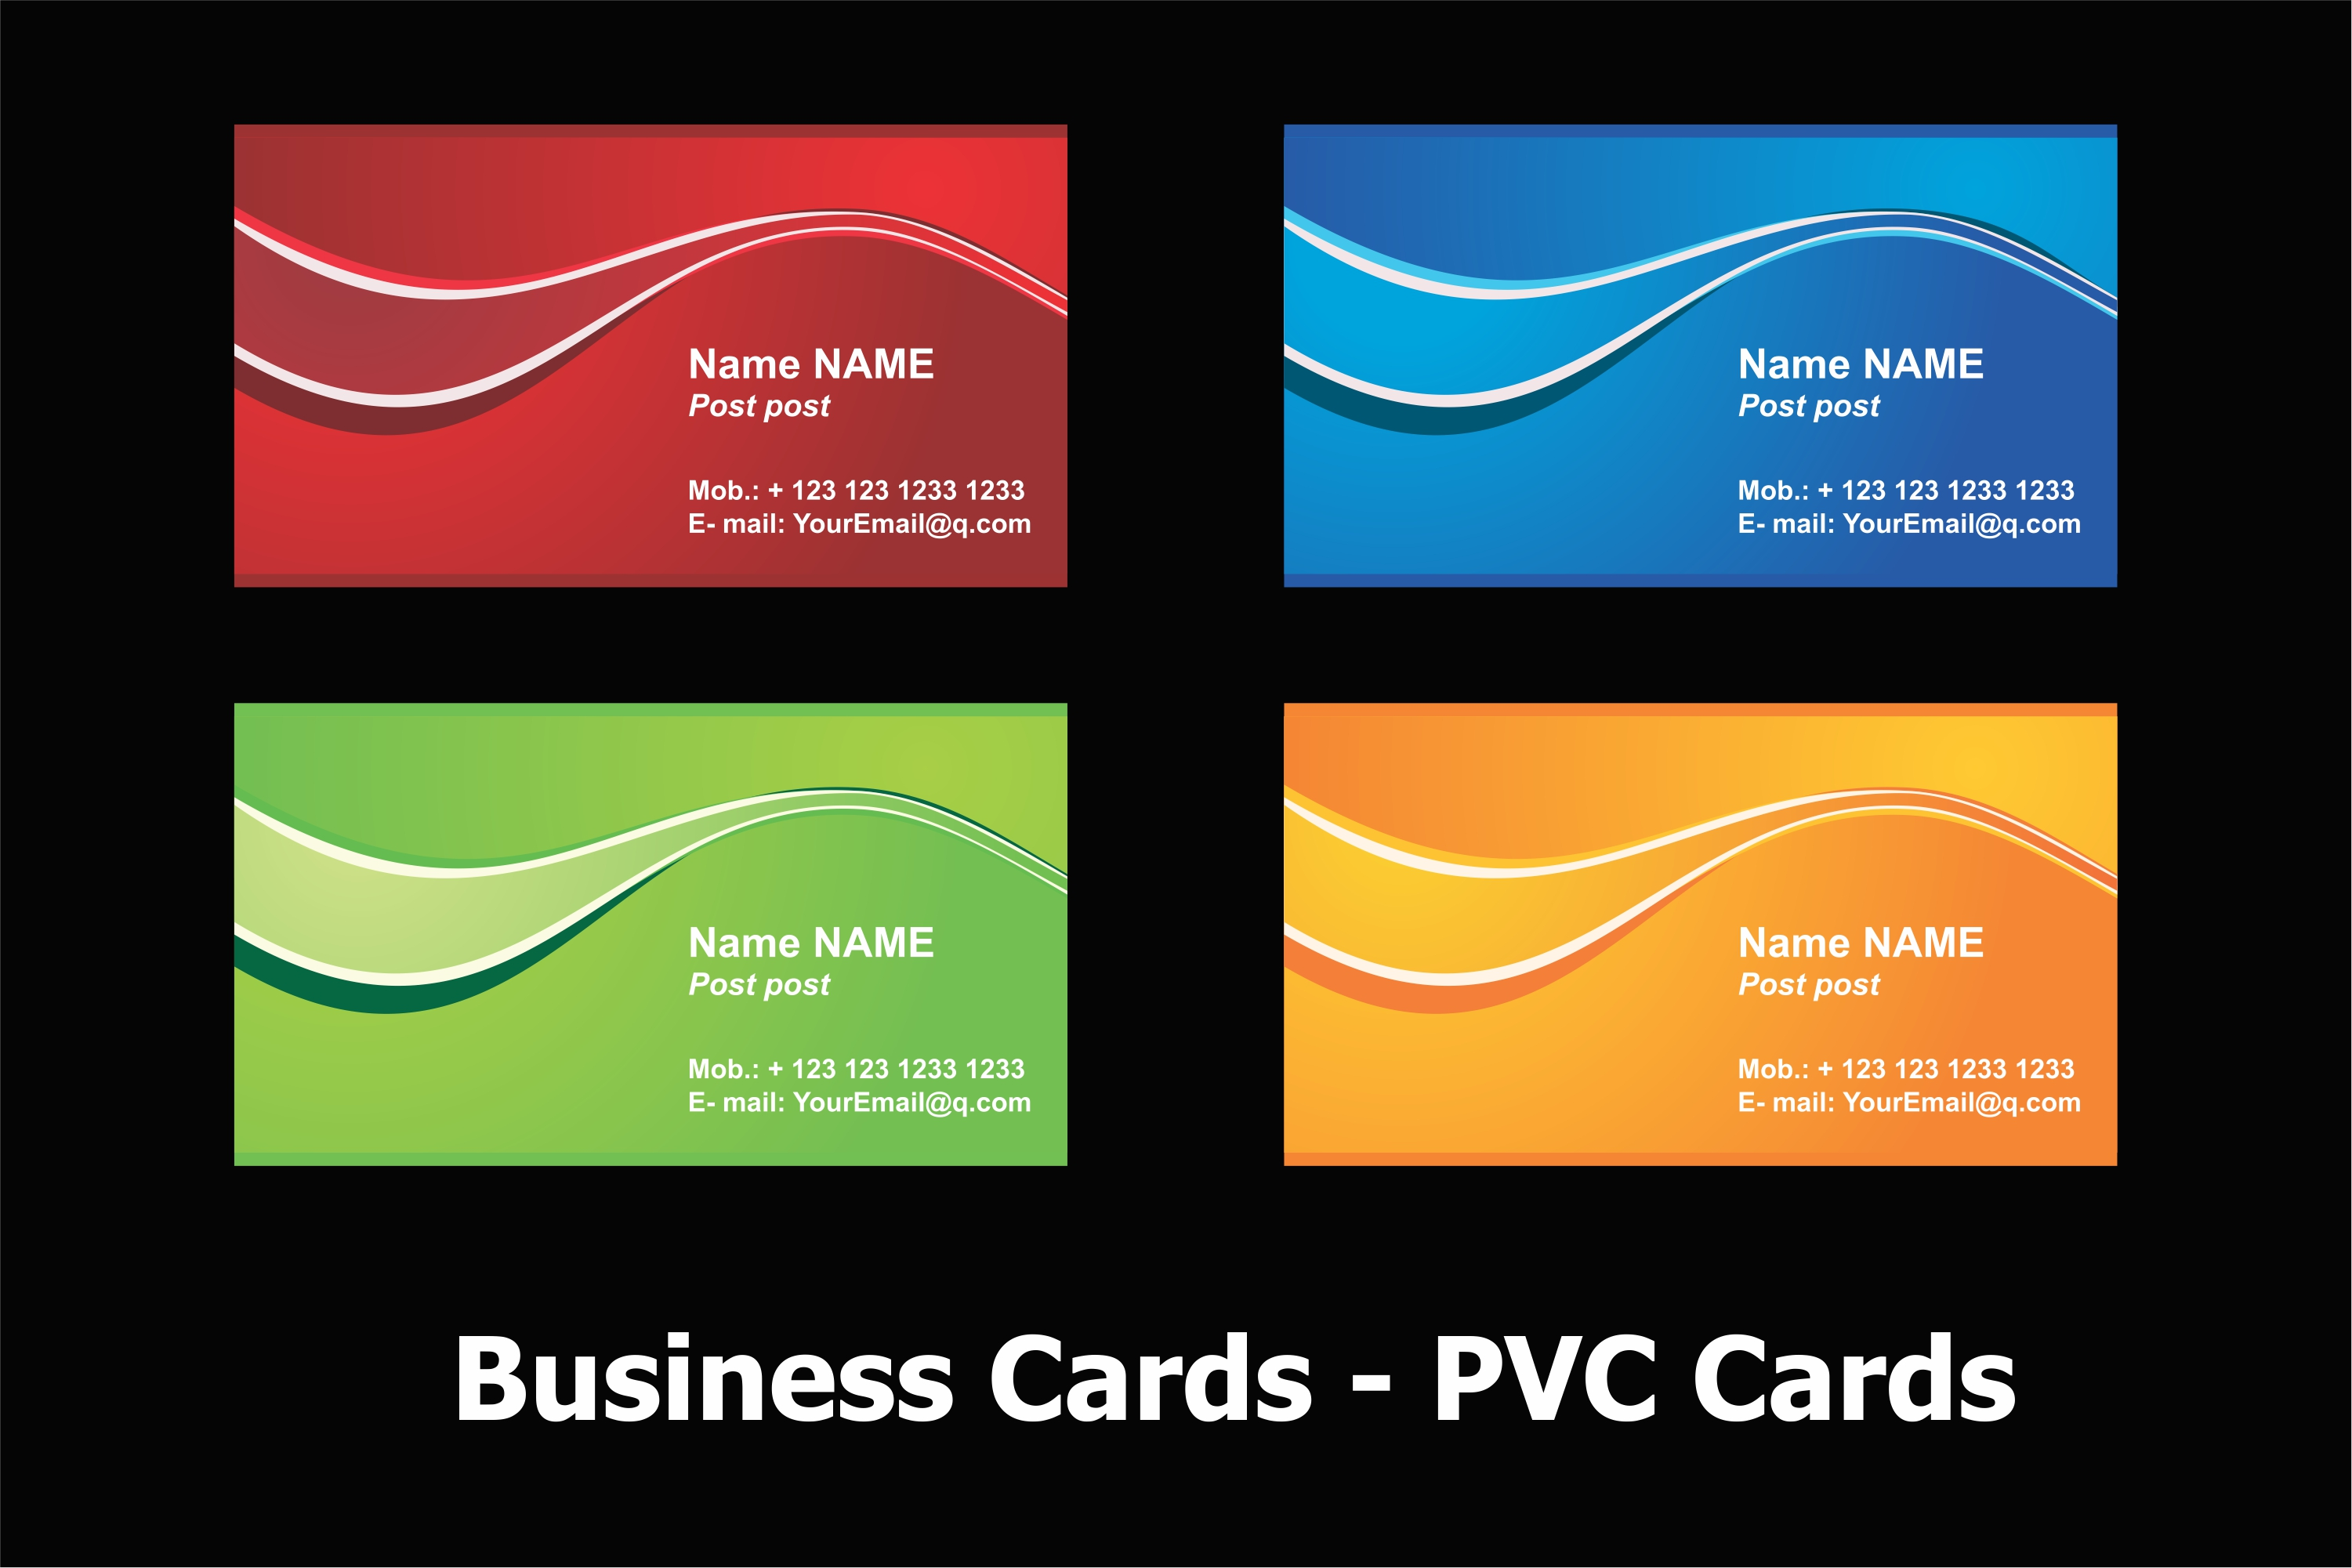 Best business card websites choice image free business cards best business card websites choice image free business cards best business card website images free business magicingreecefo Gallery